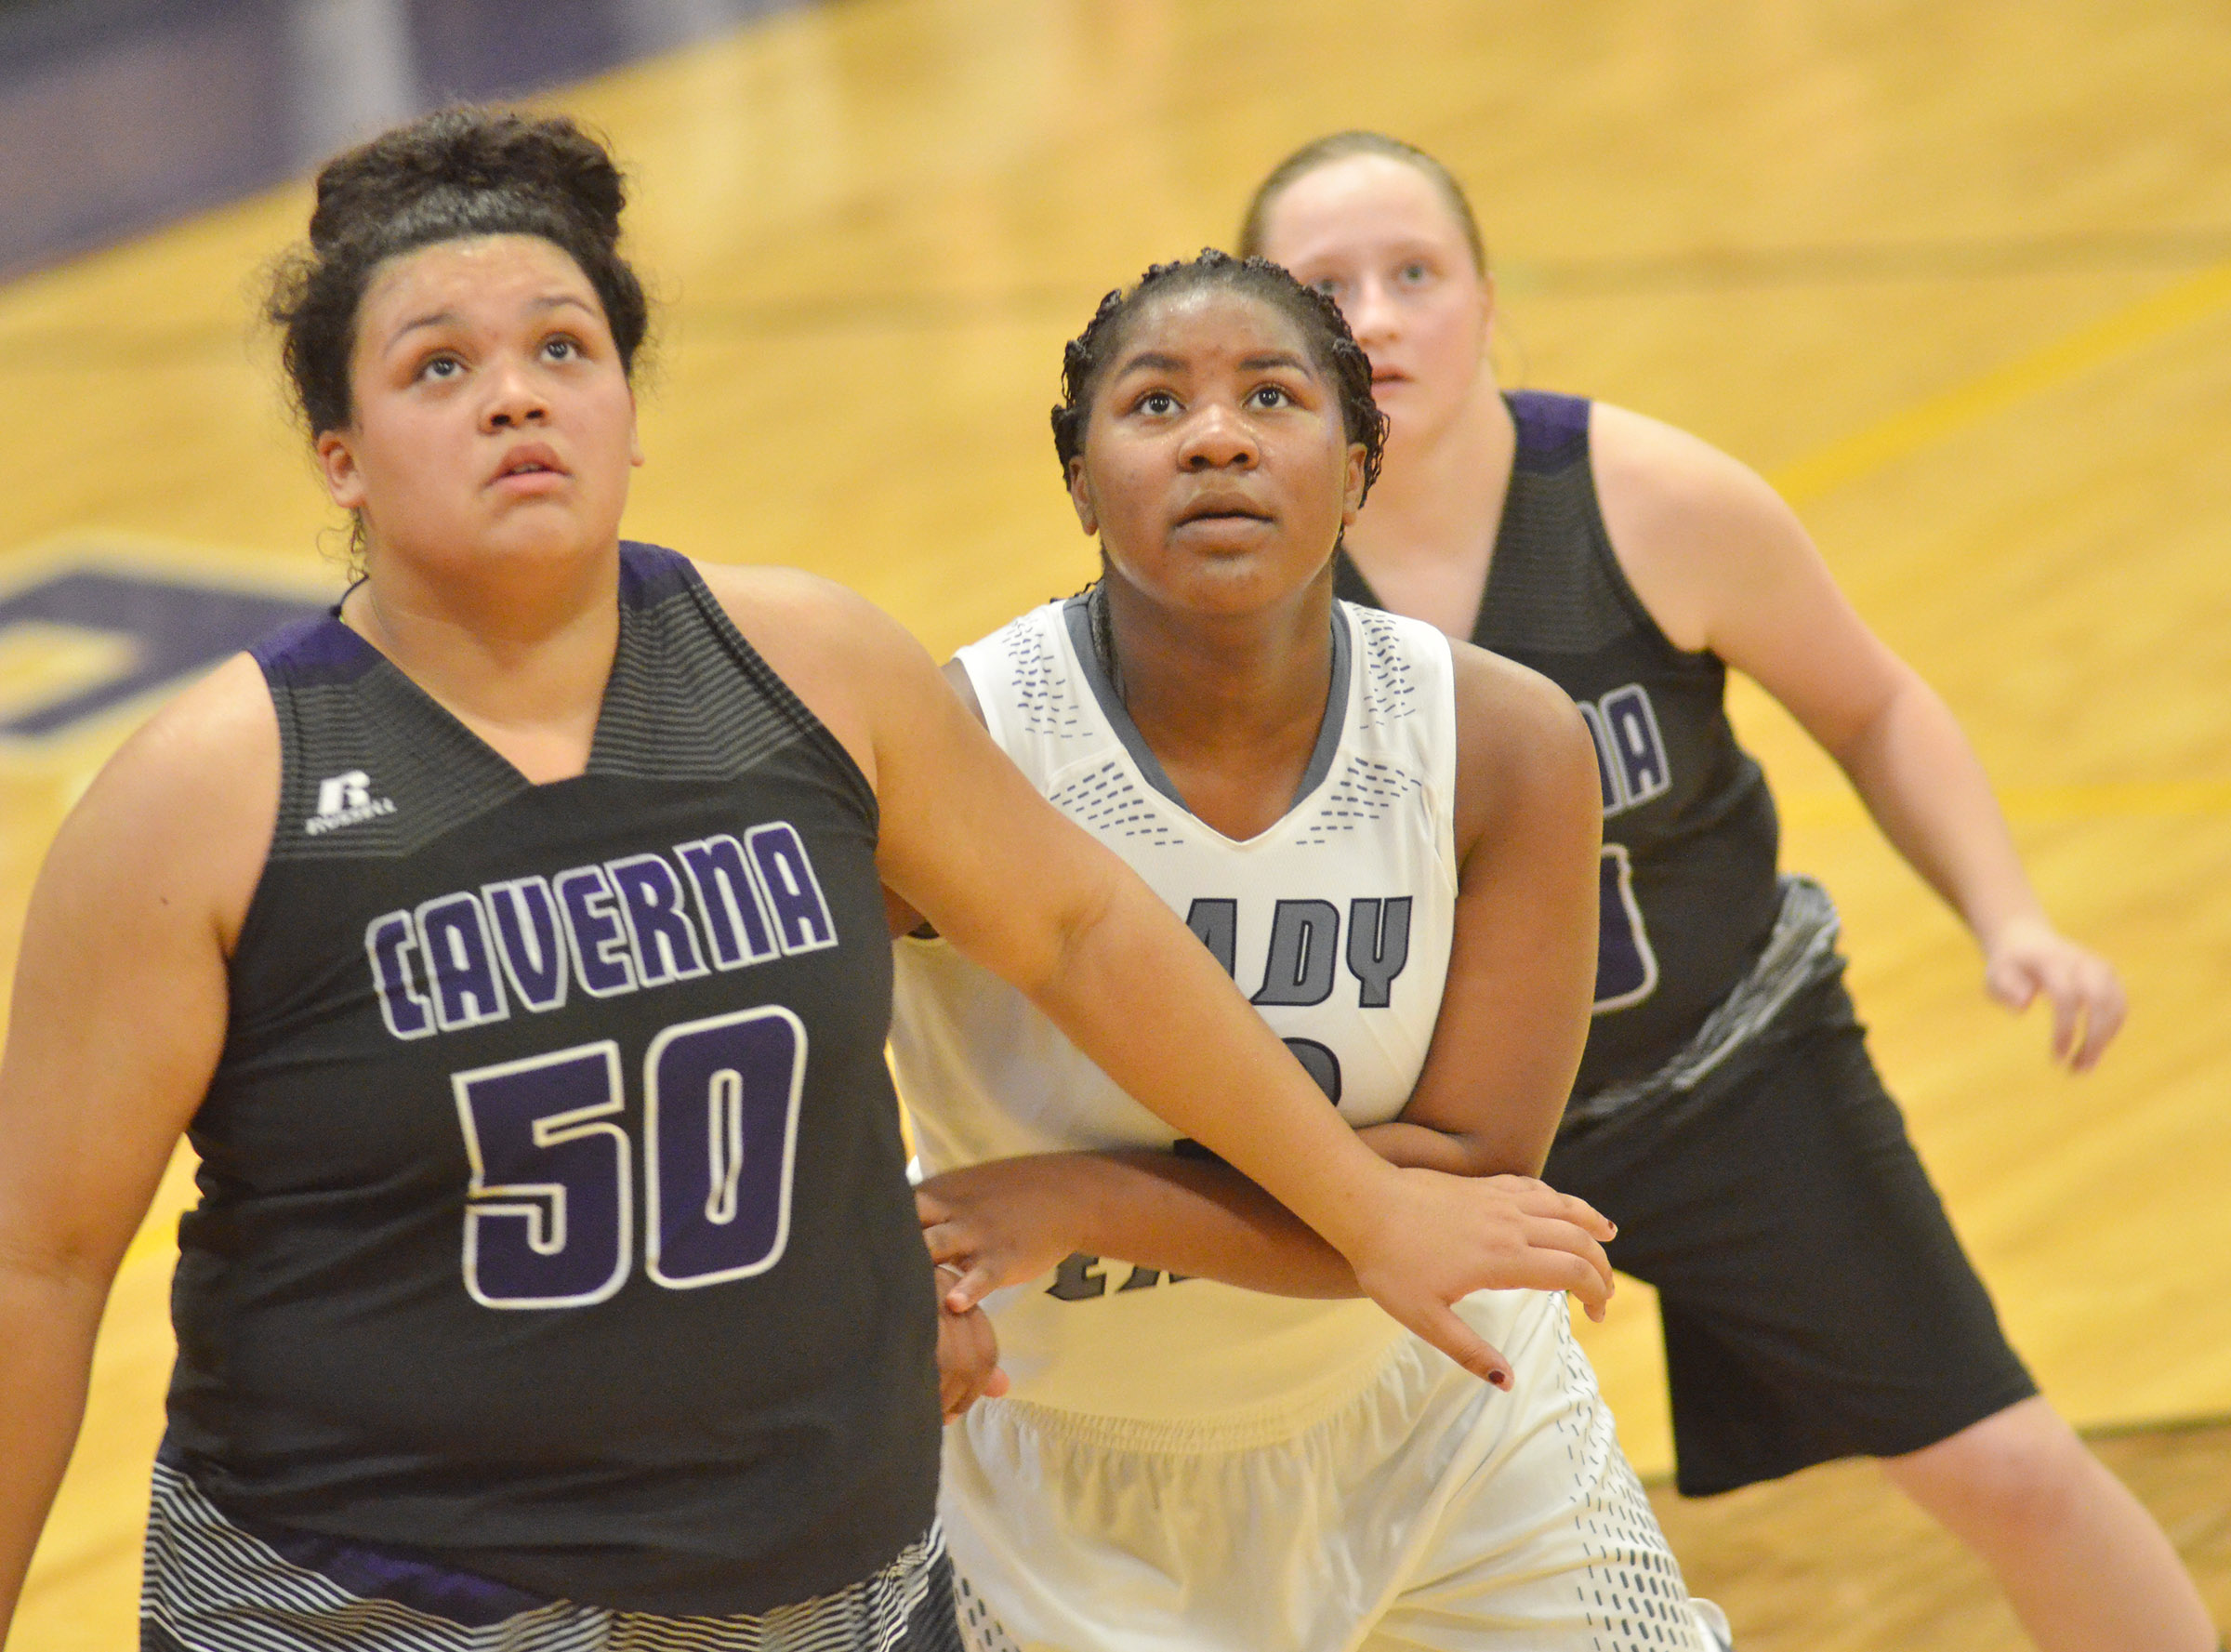 CHS senior Kiyah Barnett looks for a rebound.